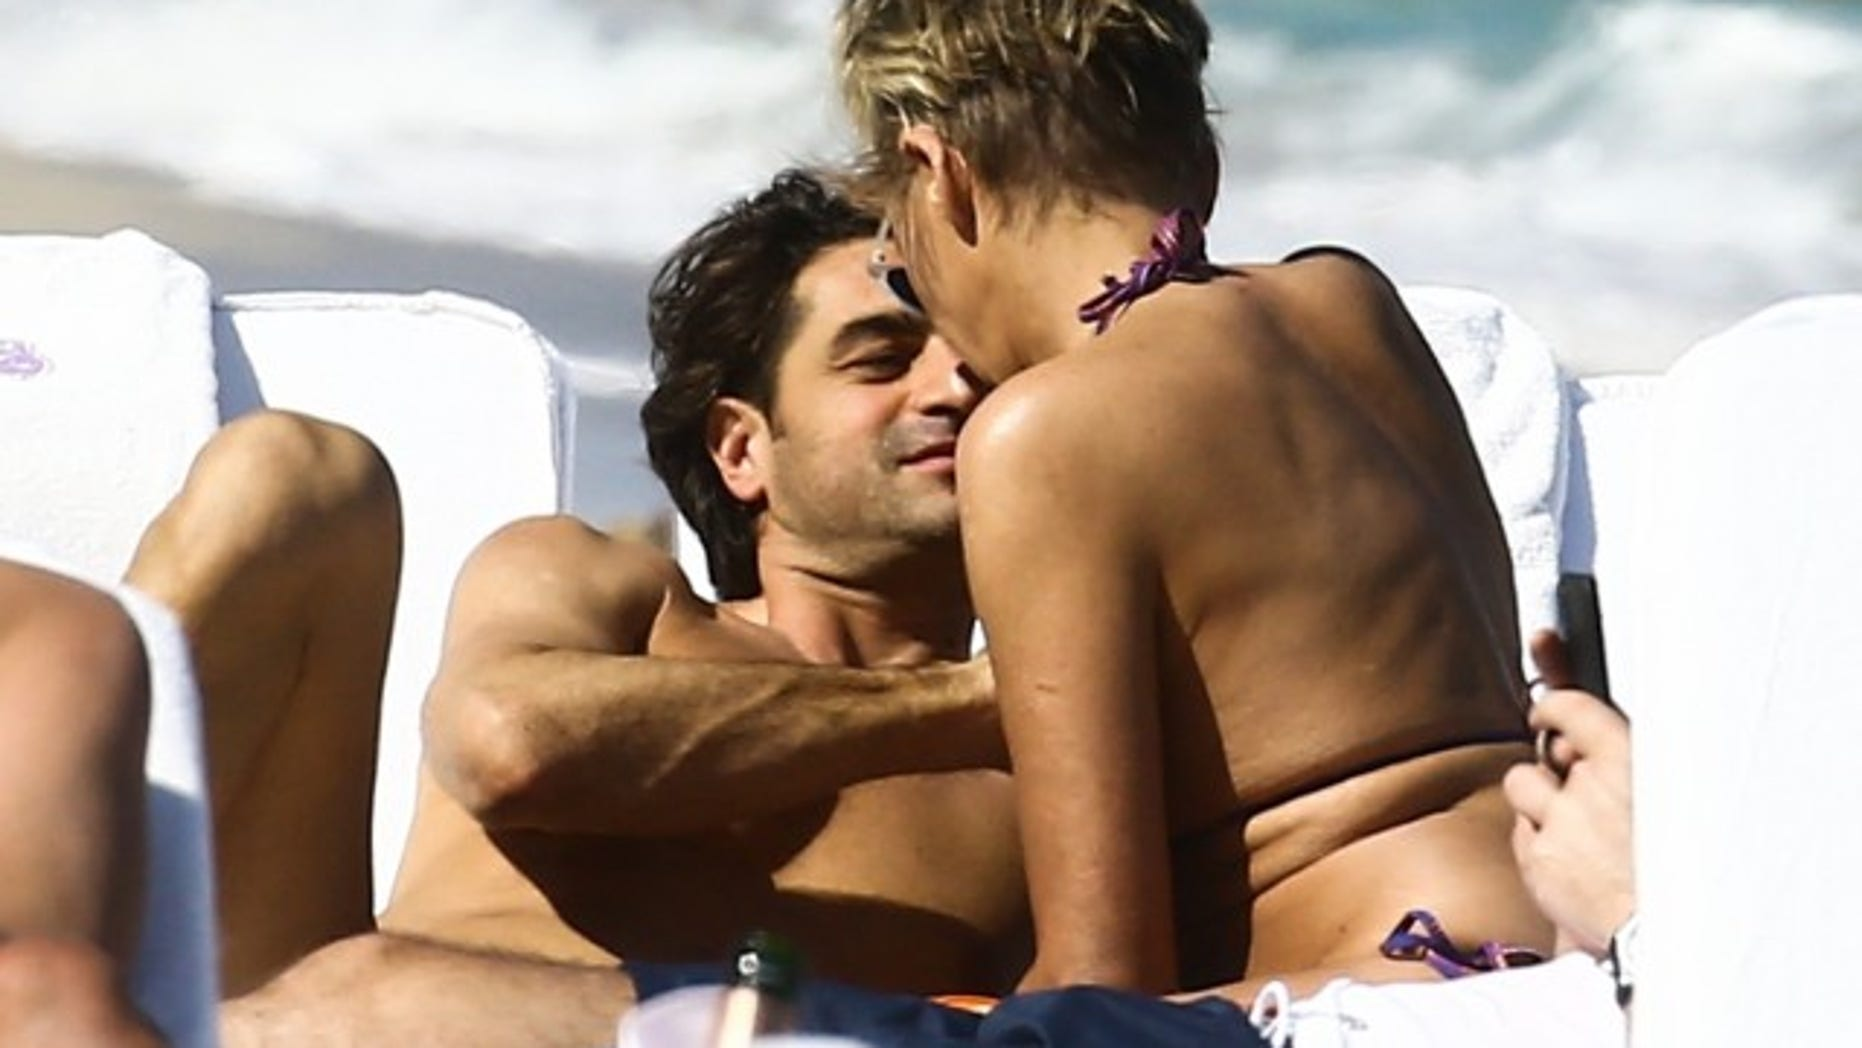 Sharon Stone and her boyfriend enjoy a date on the beach.